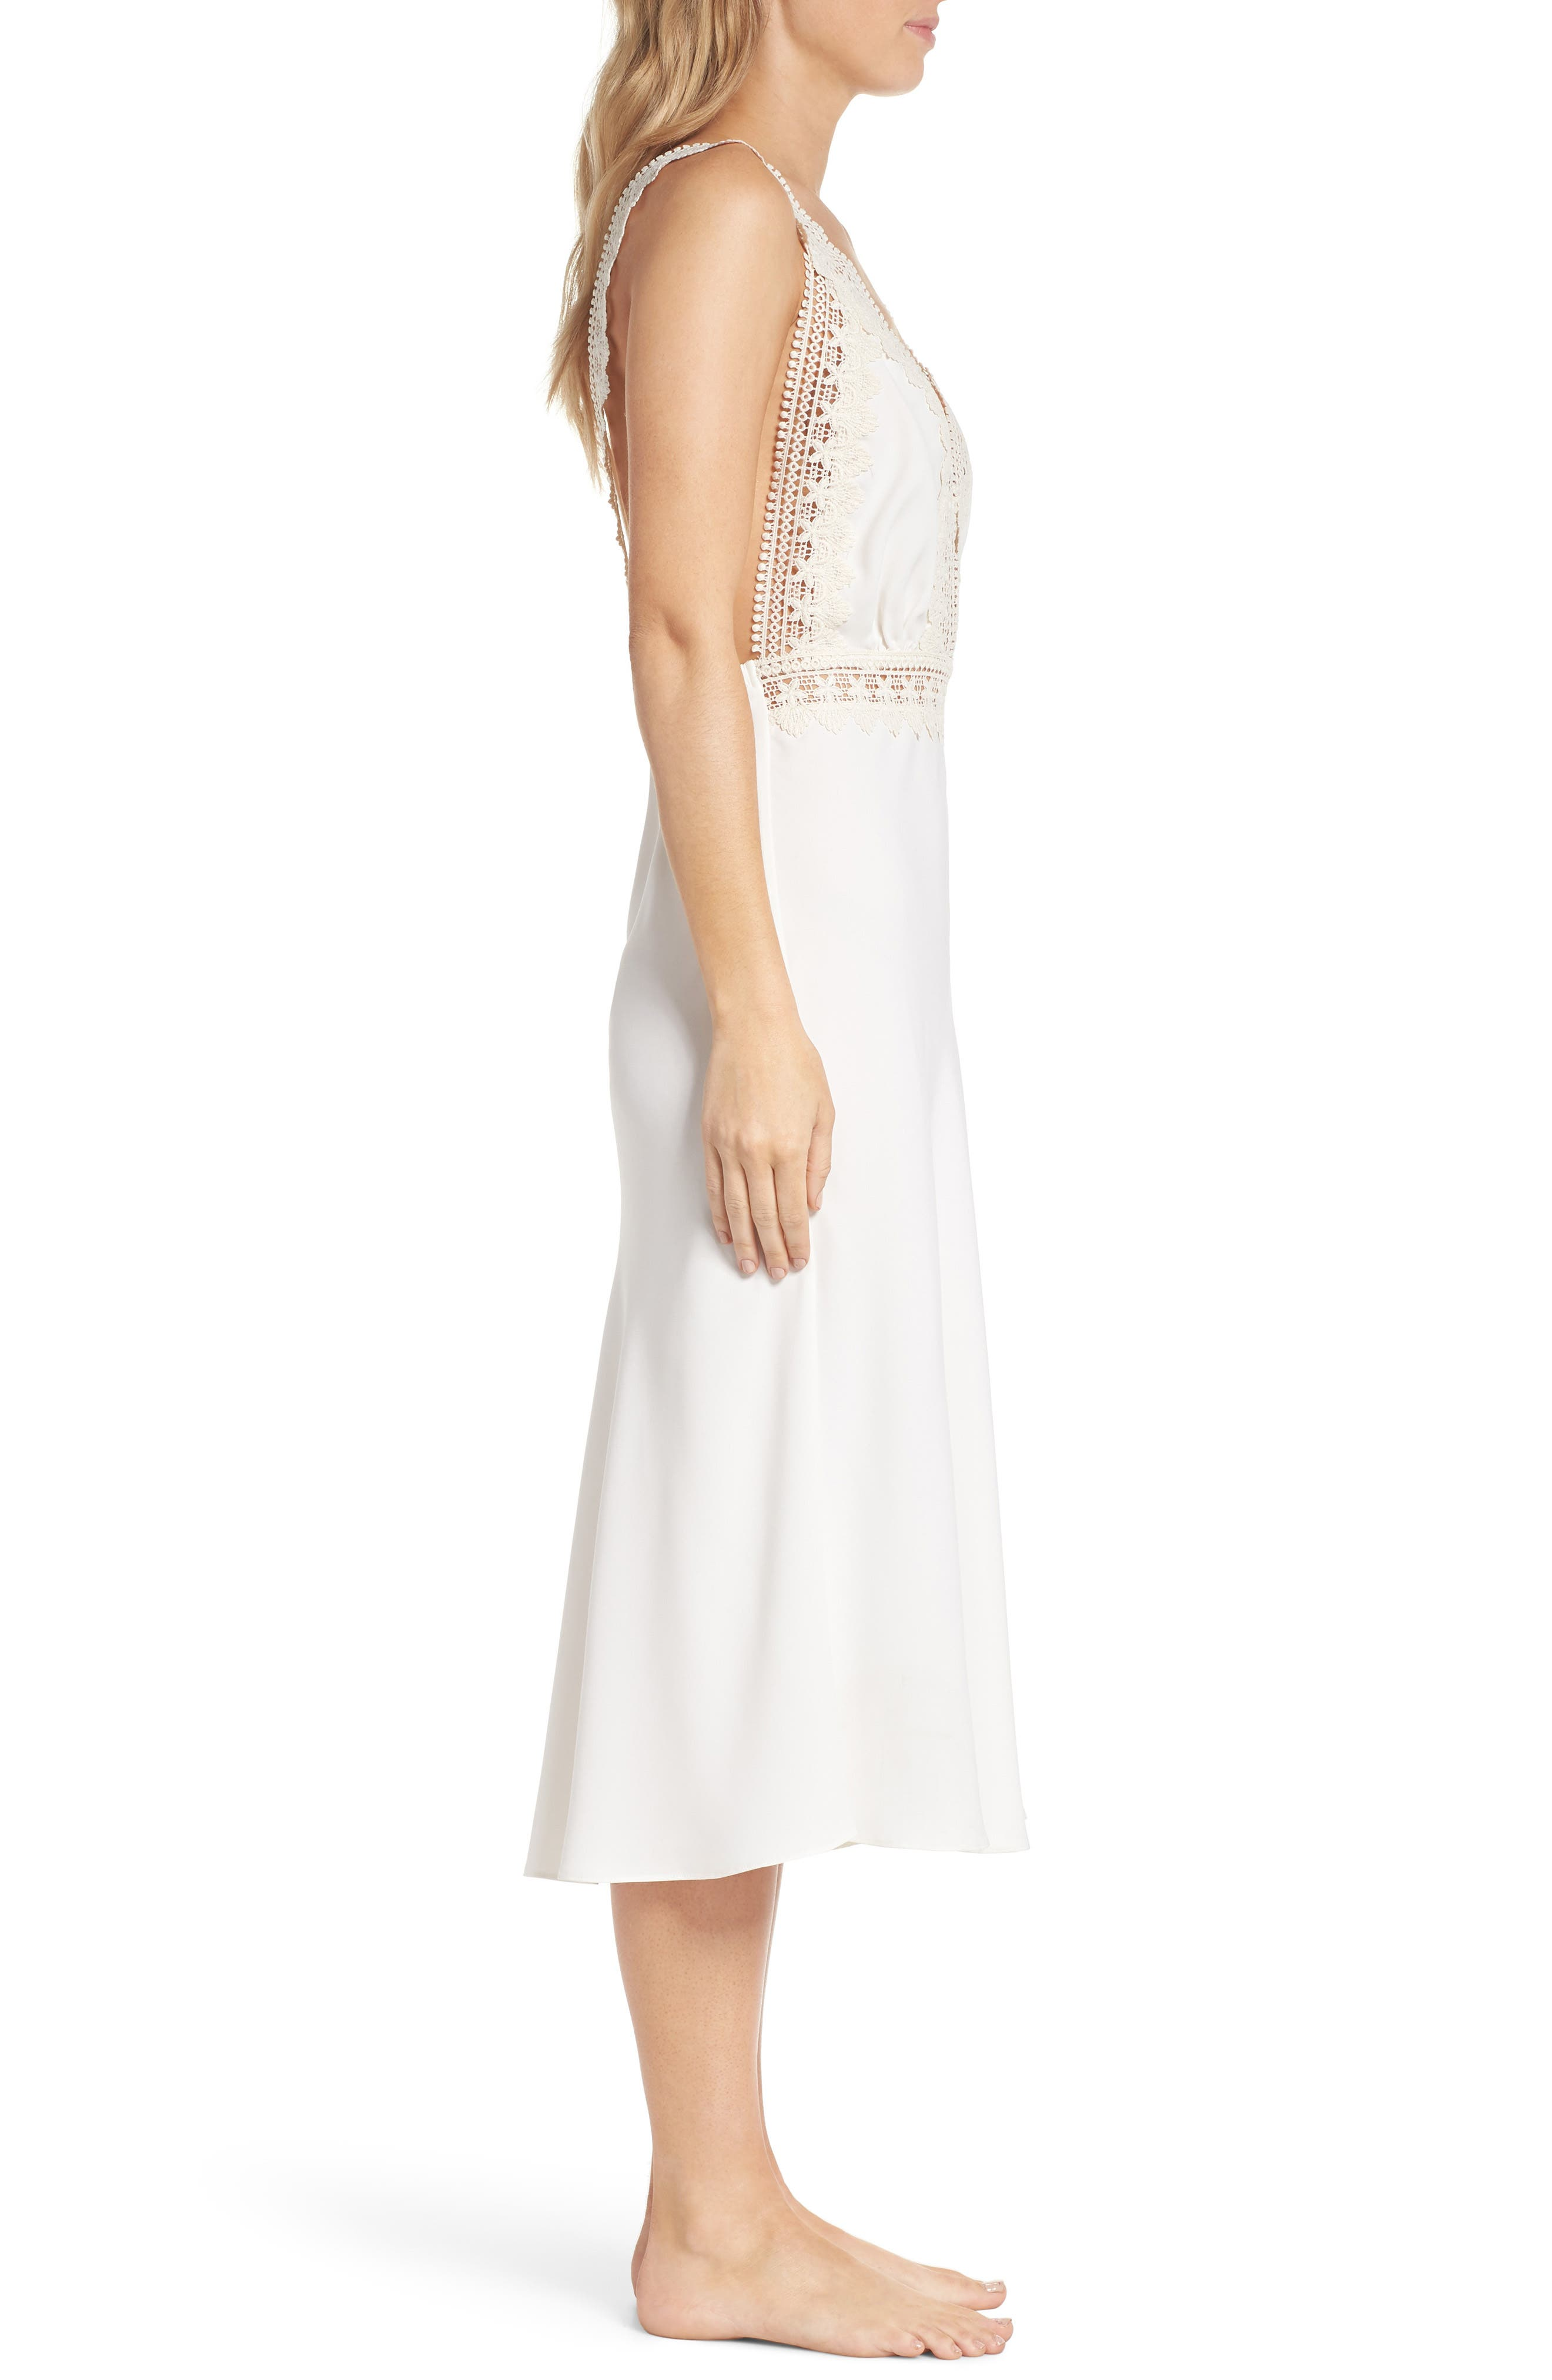 Blythe Nightgown,                             Alternate thumbnail 3, color,                             901